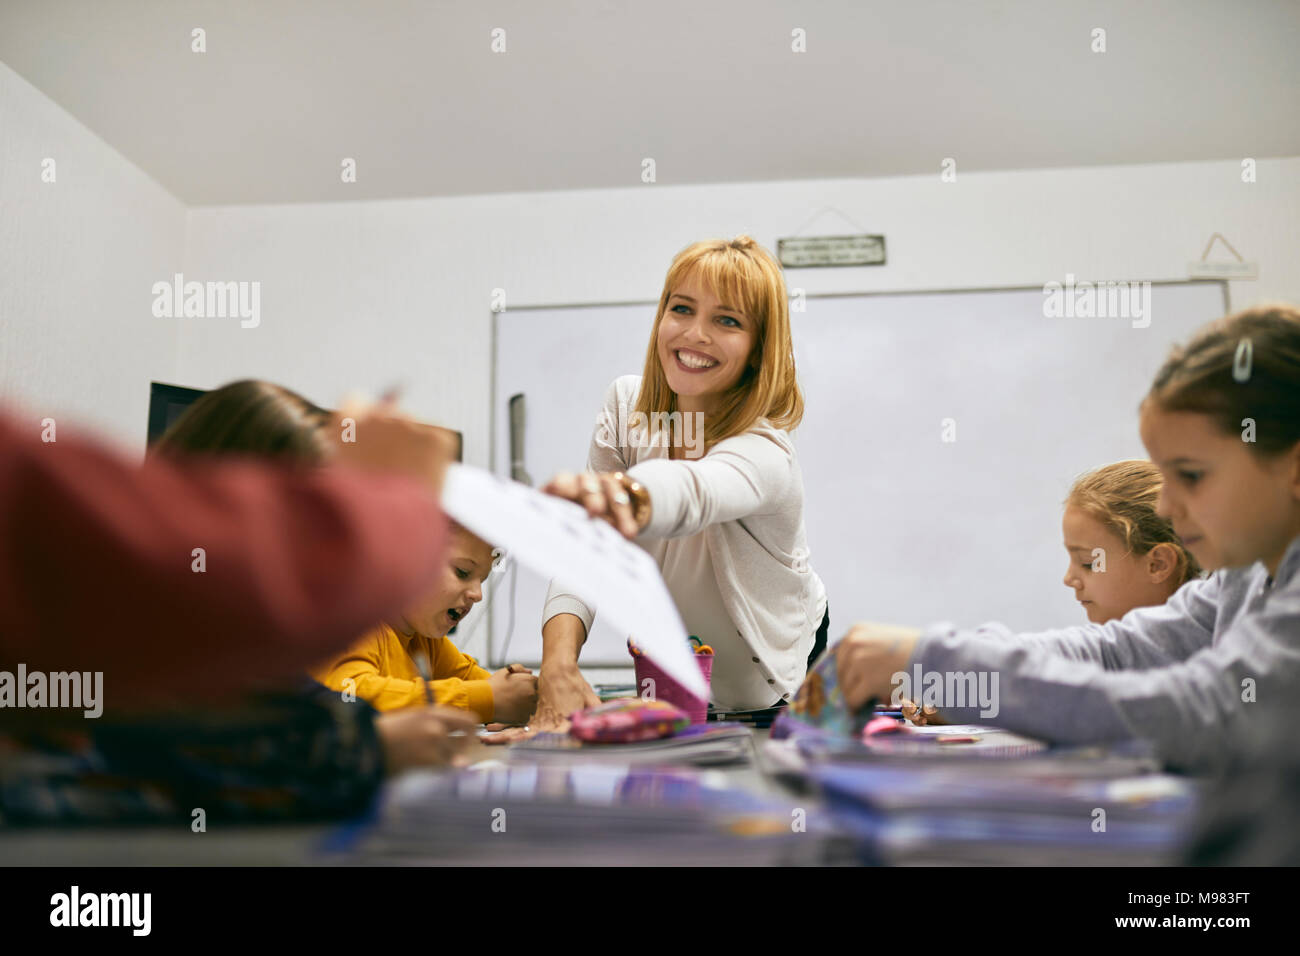 Smiling teacher la remise de feuille de papier pour student in class Photo Stock